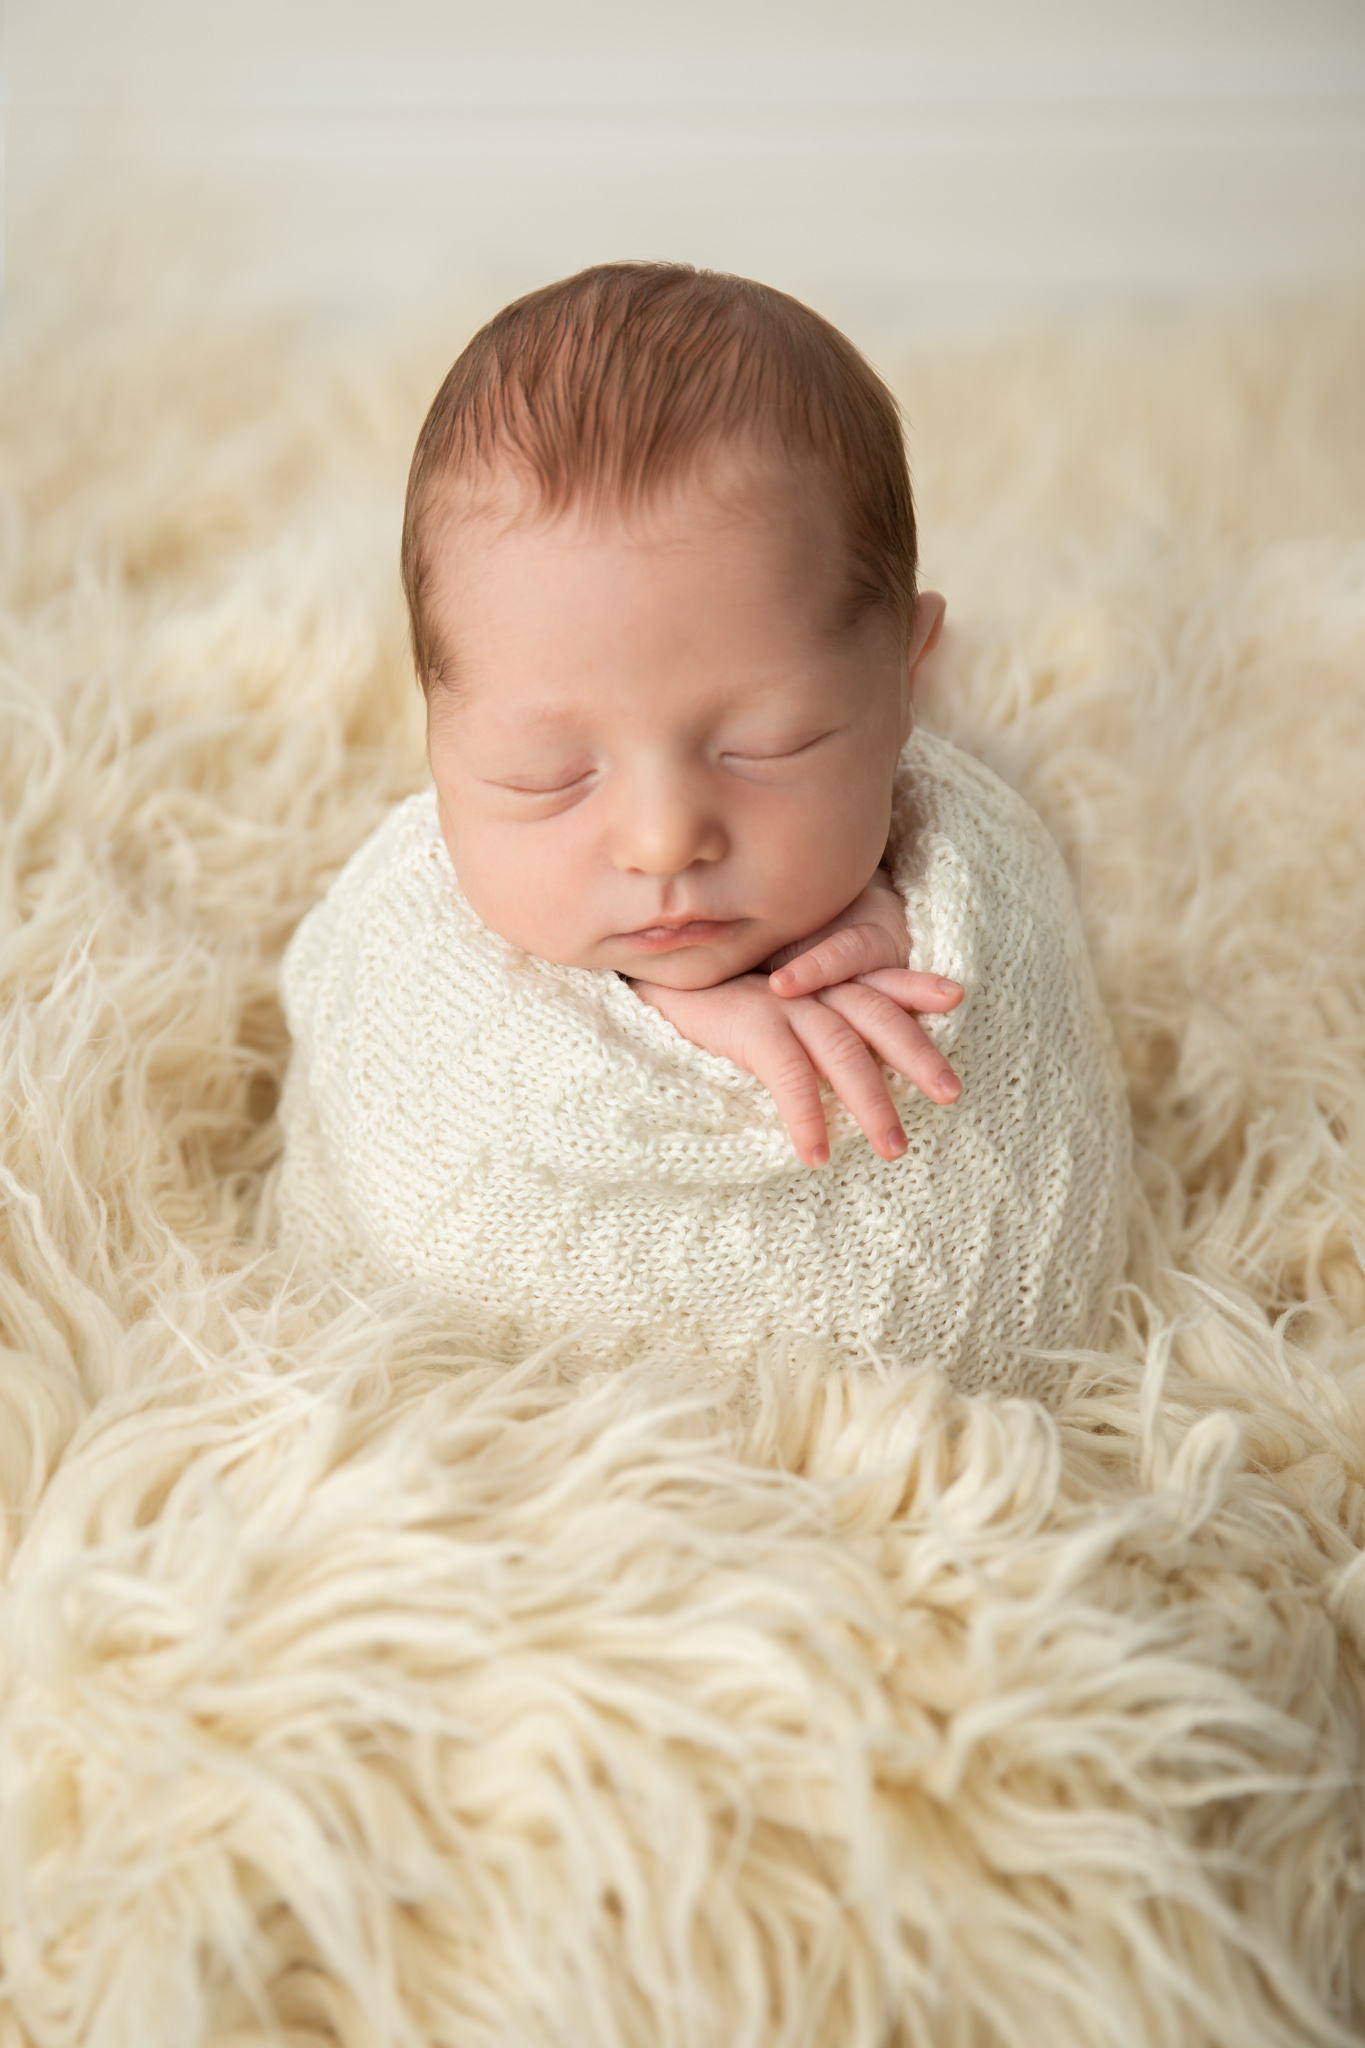 Newbornfoto Bad Homburg